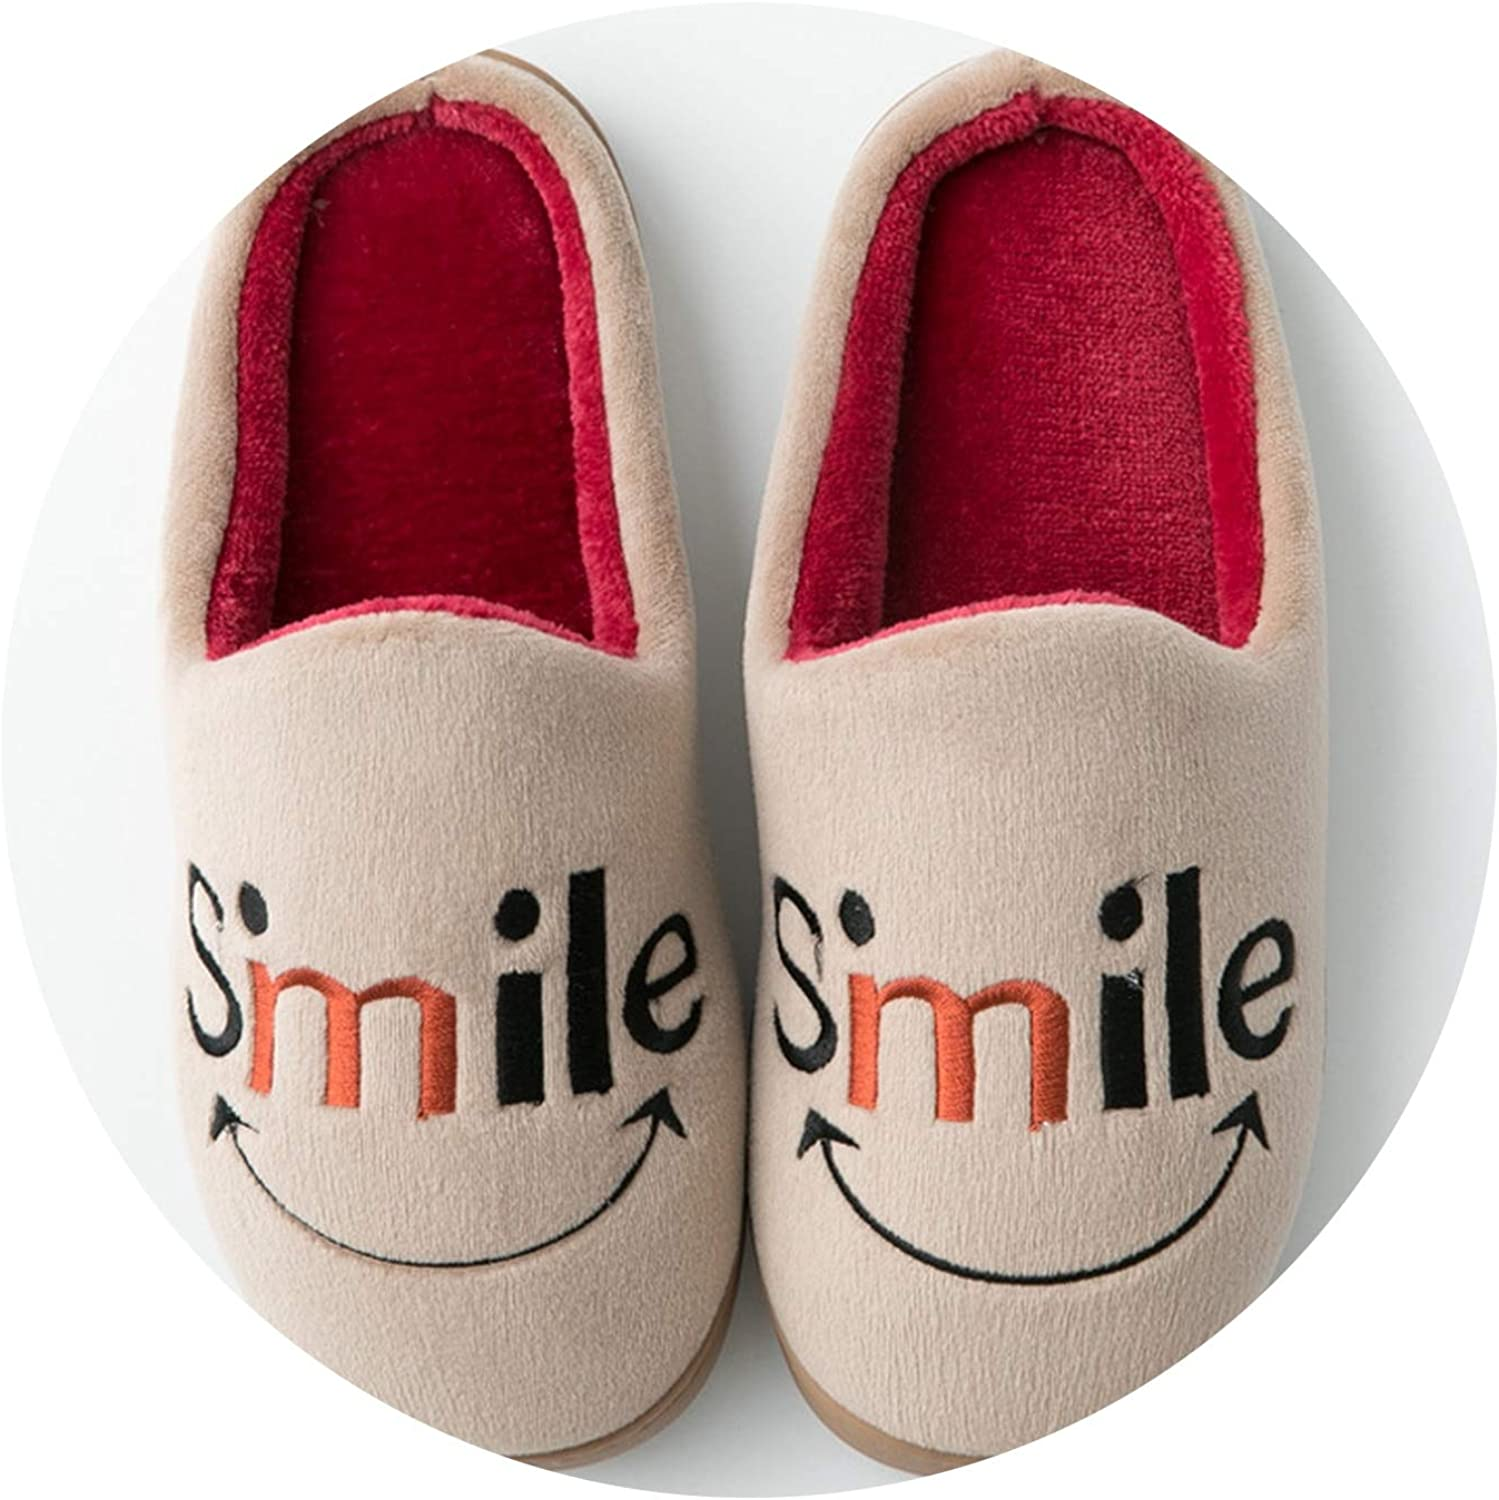 Pursuit-of-self-CA-cotton slippers Indoor Bedroom Non-Slip Warm Month shoes